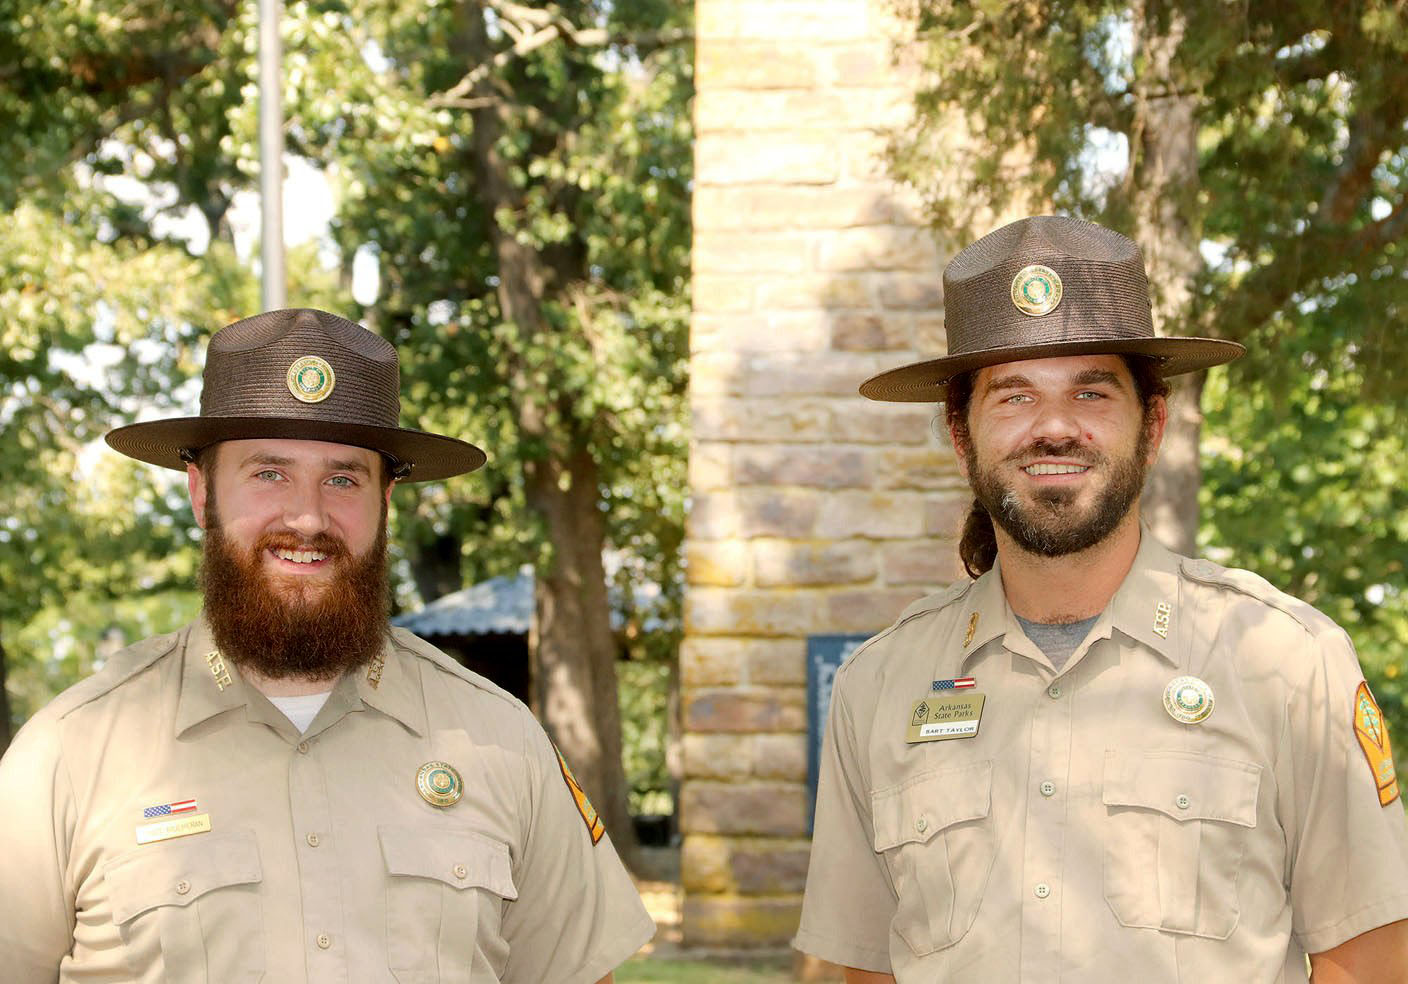 New park interpreters bring re-enactment backgrounds